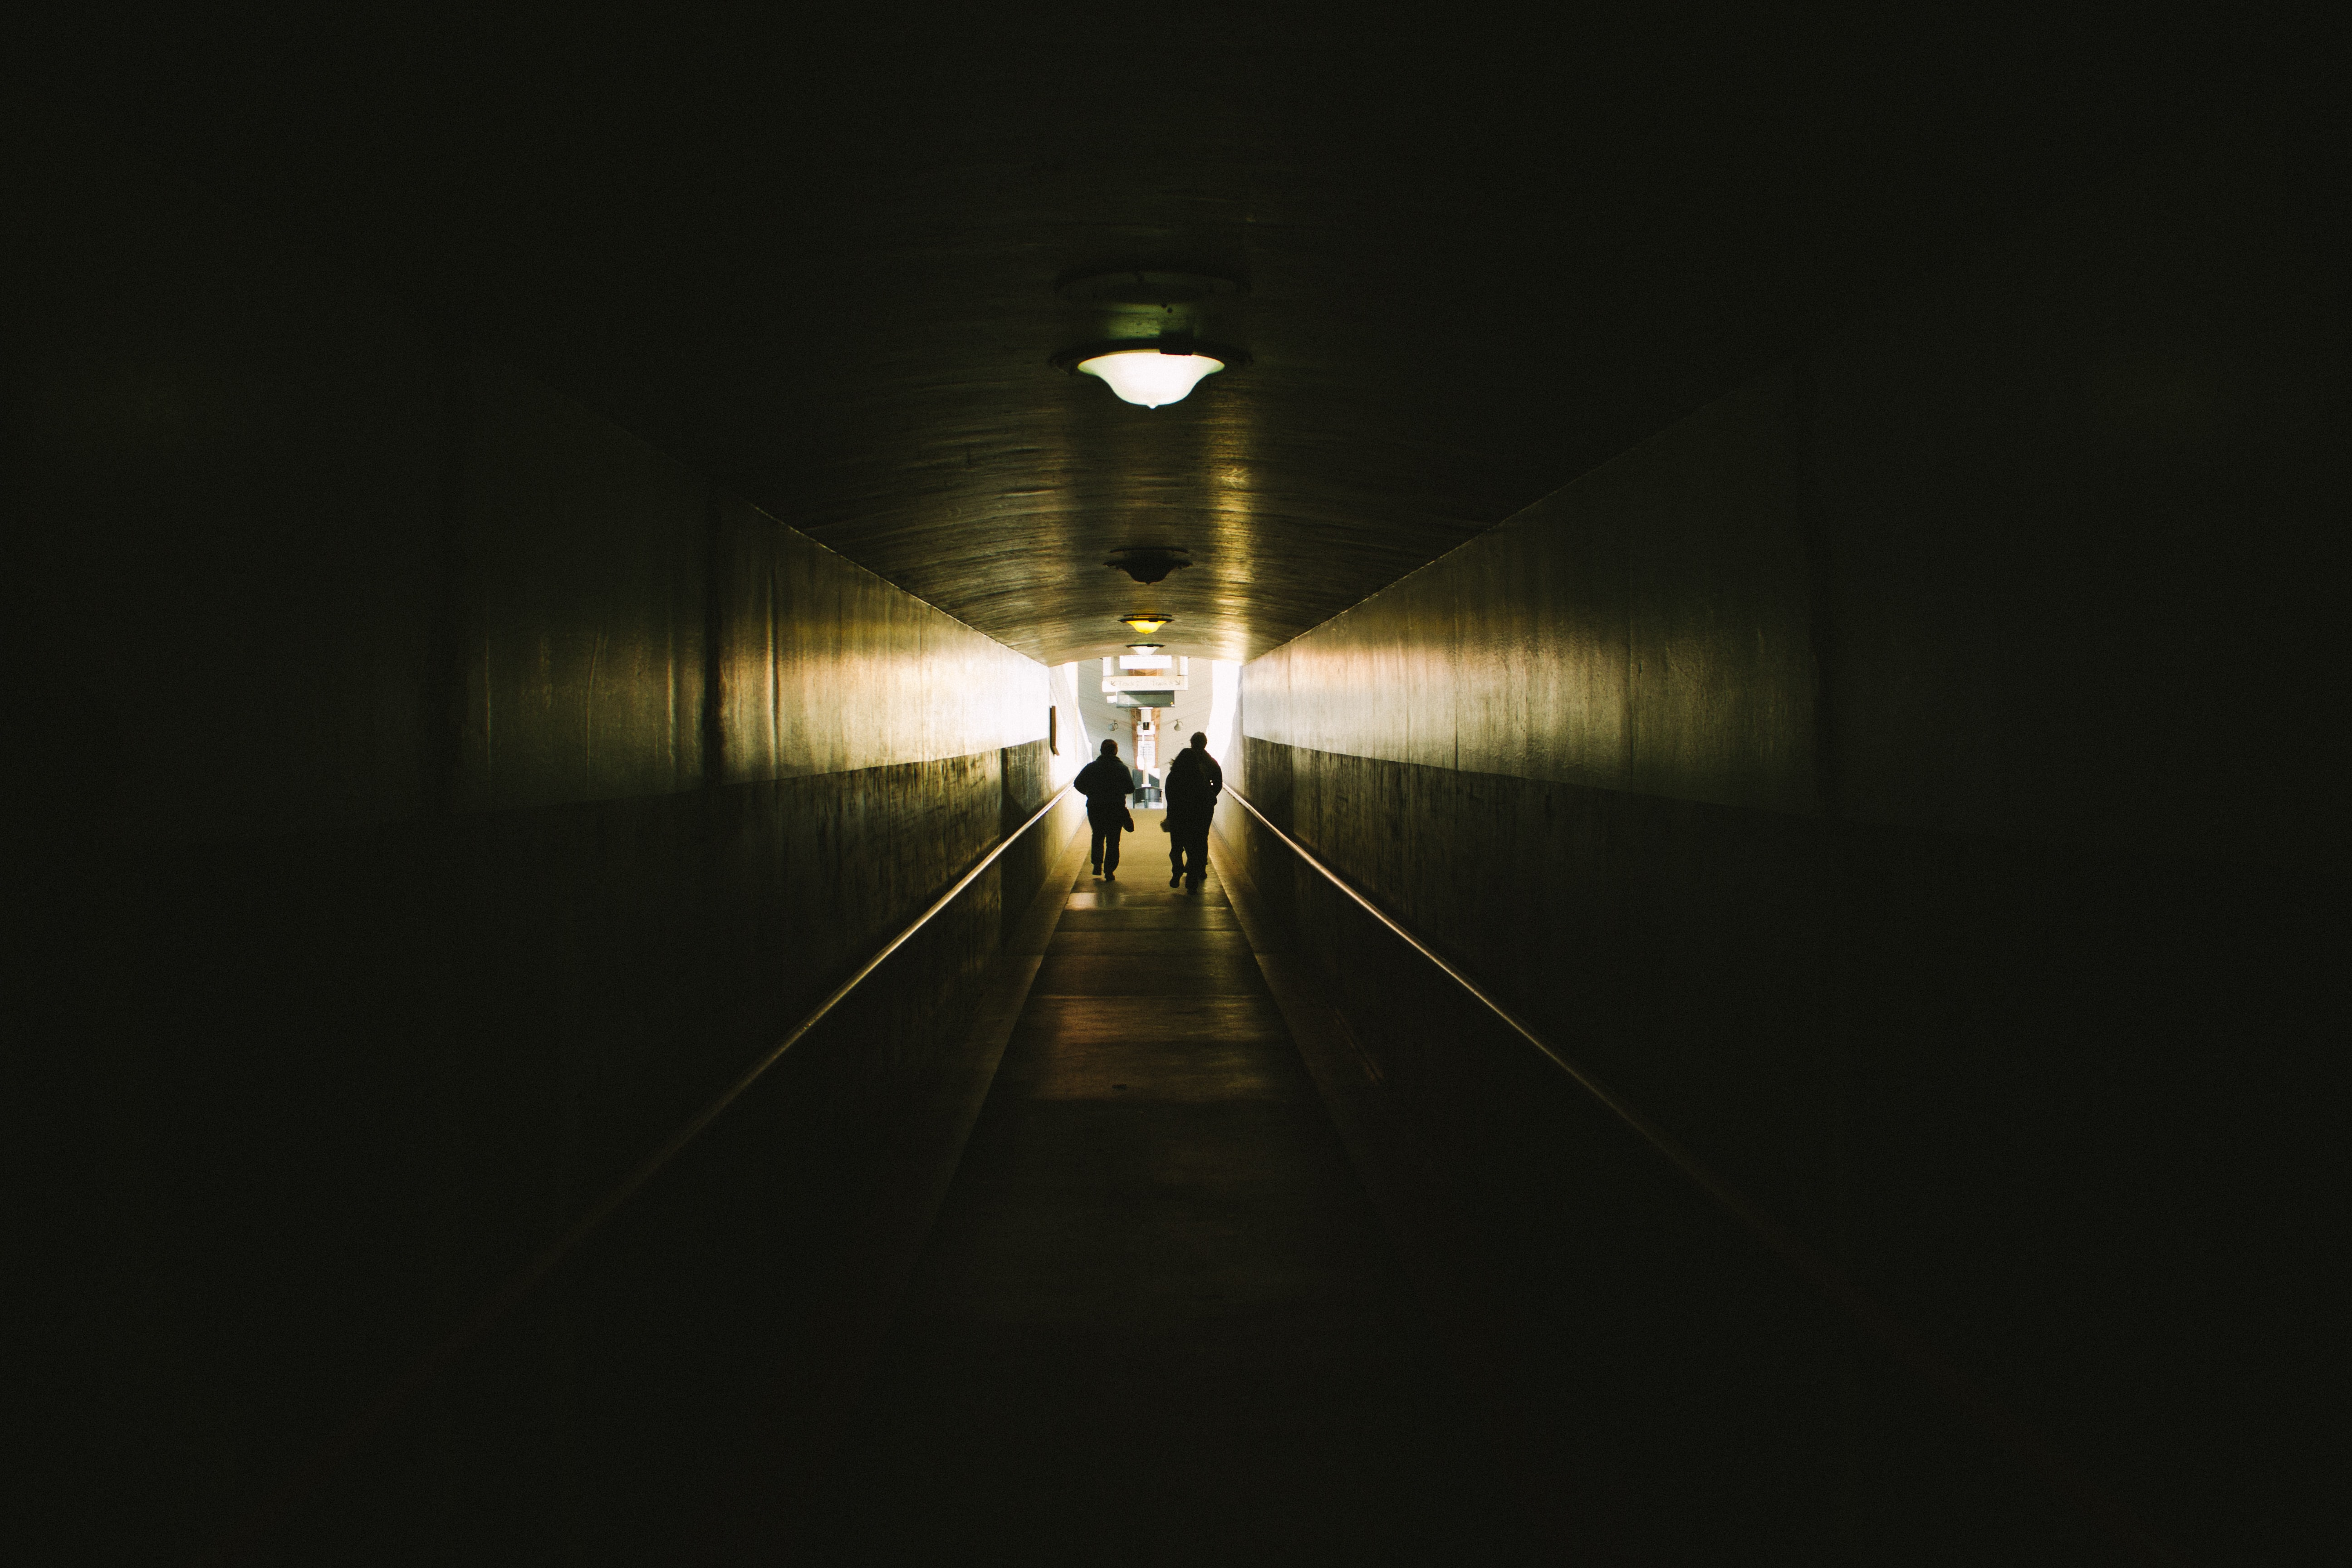 two person walking between concrete walls